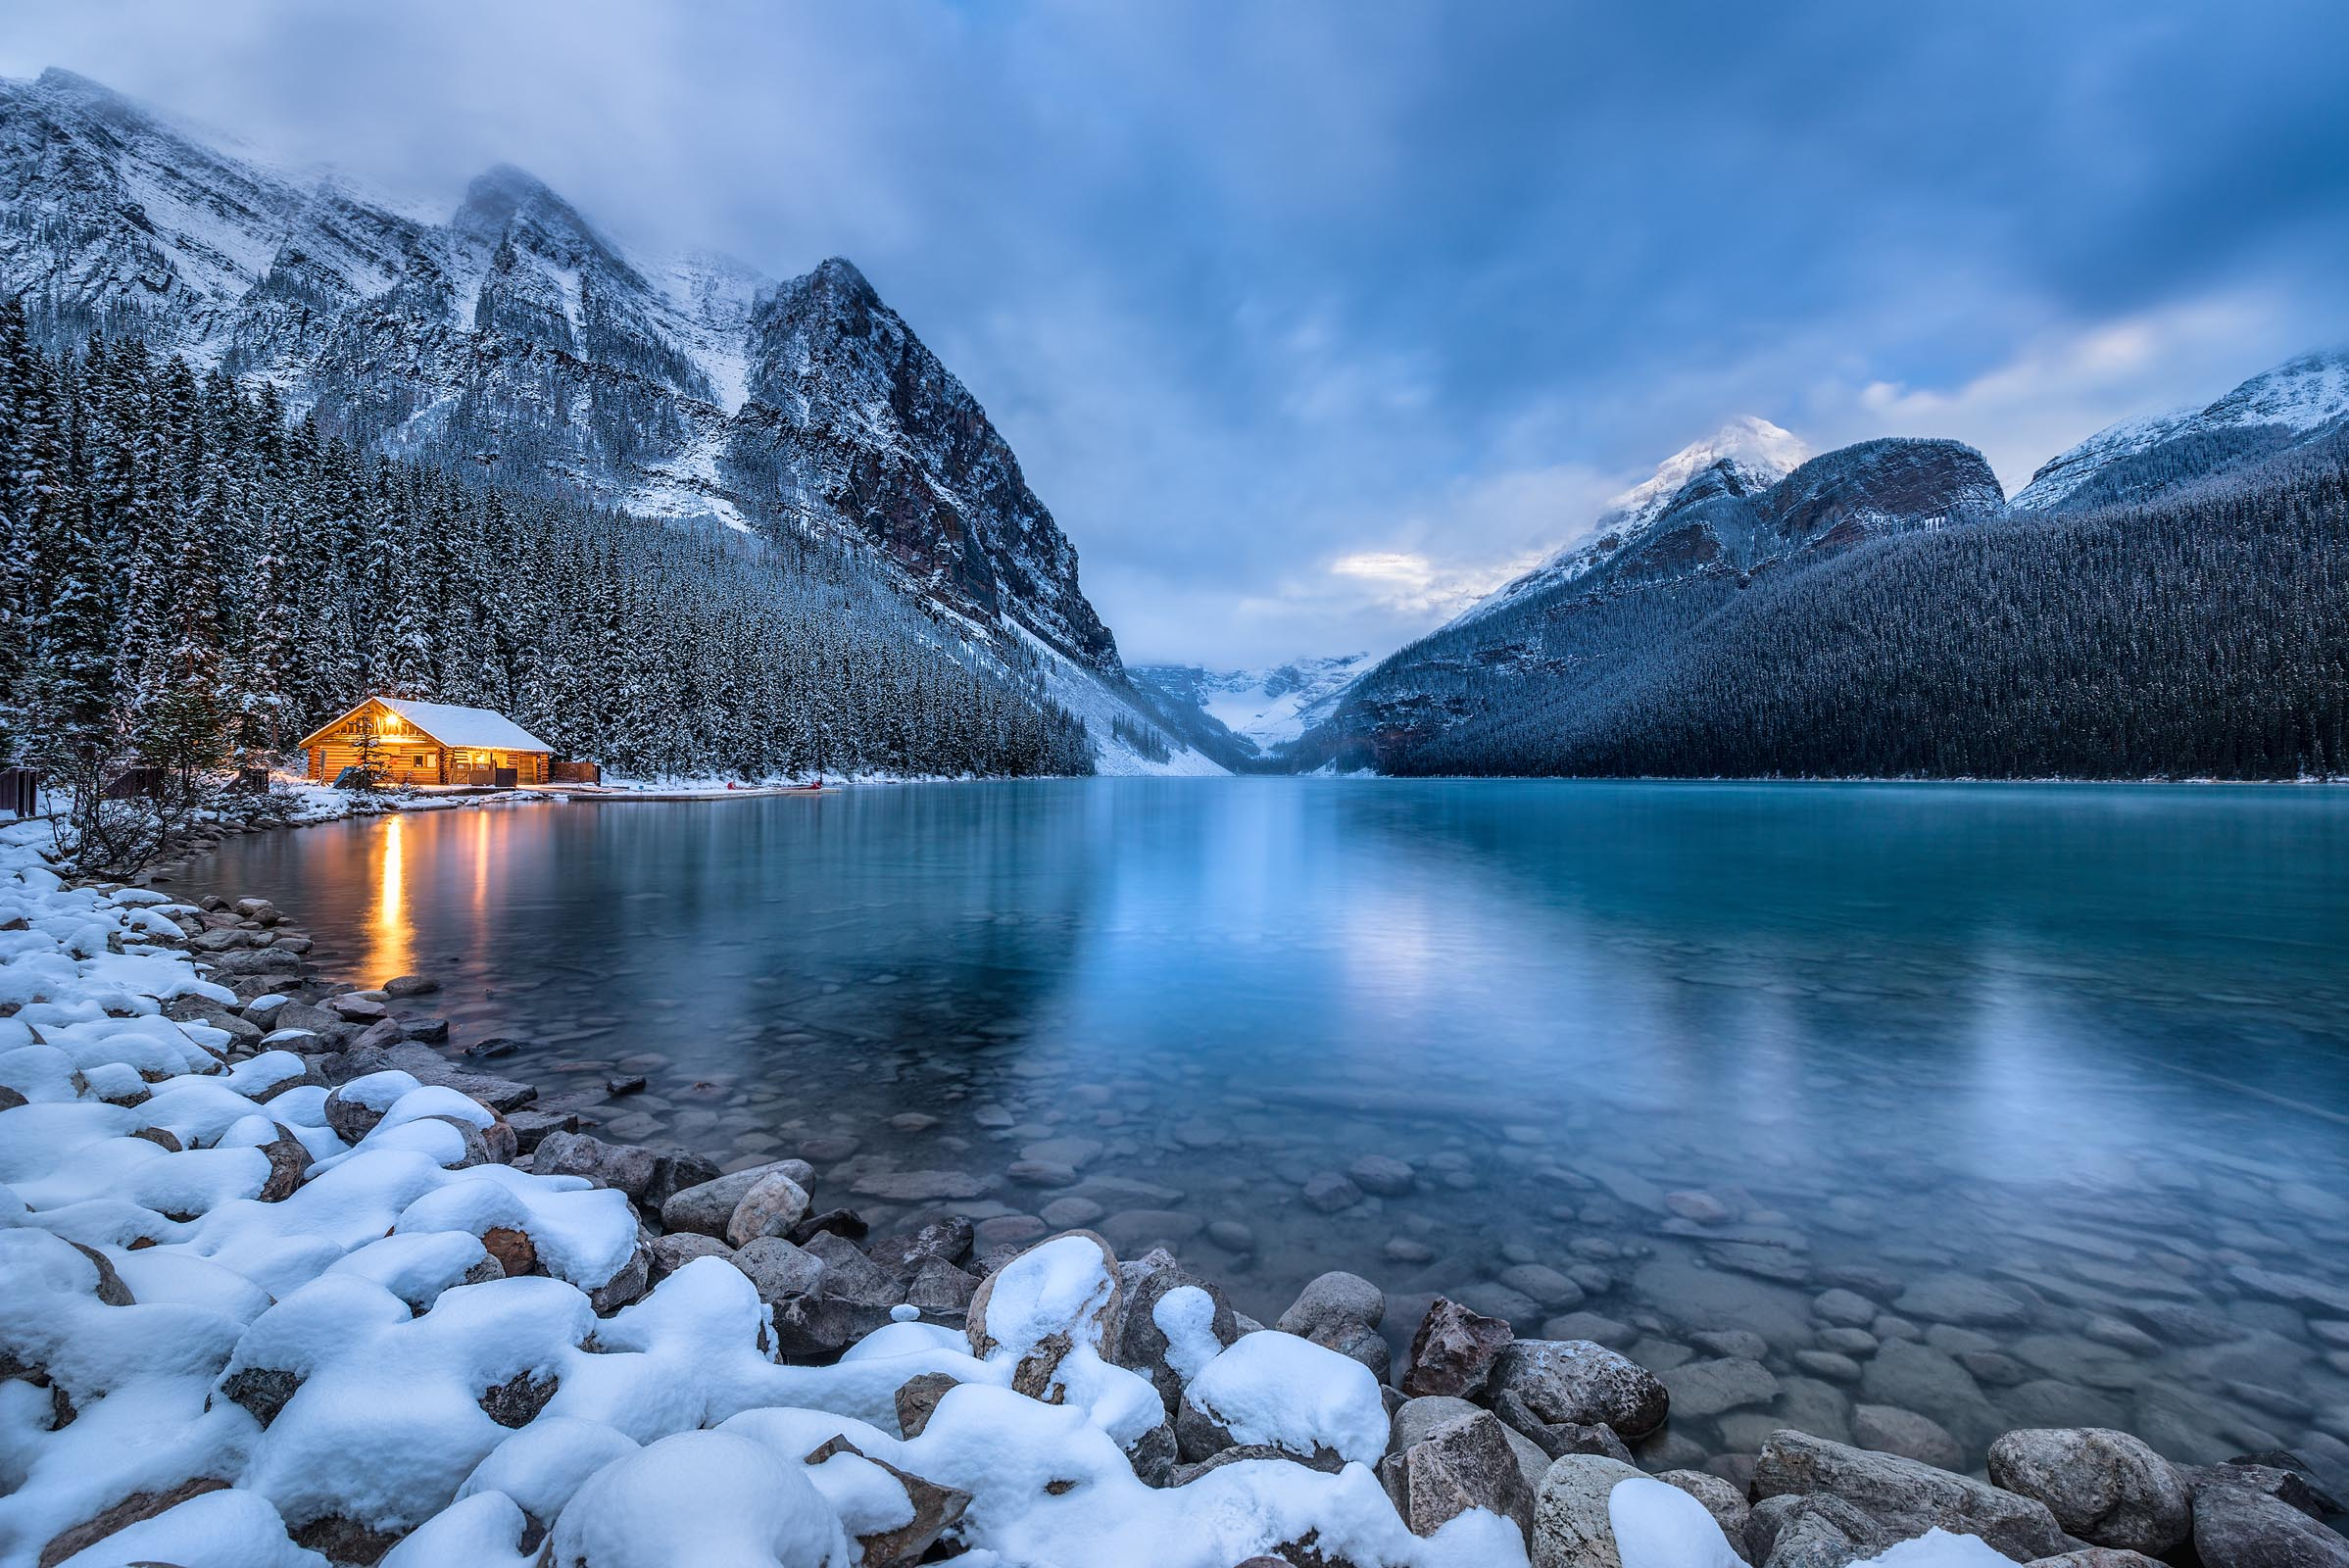 Photograph of Lake Louise in Banff, Canada by Brent Goldman Photography